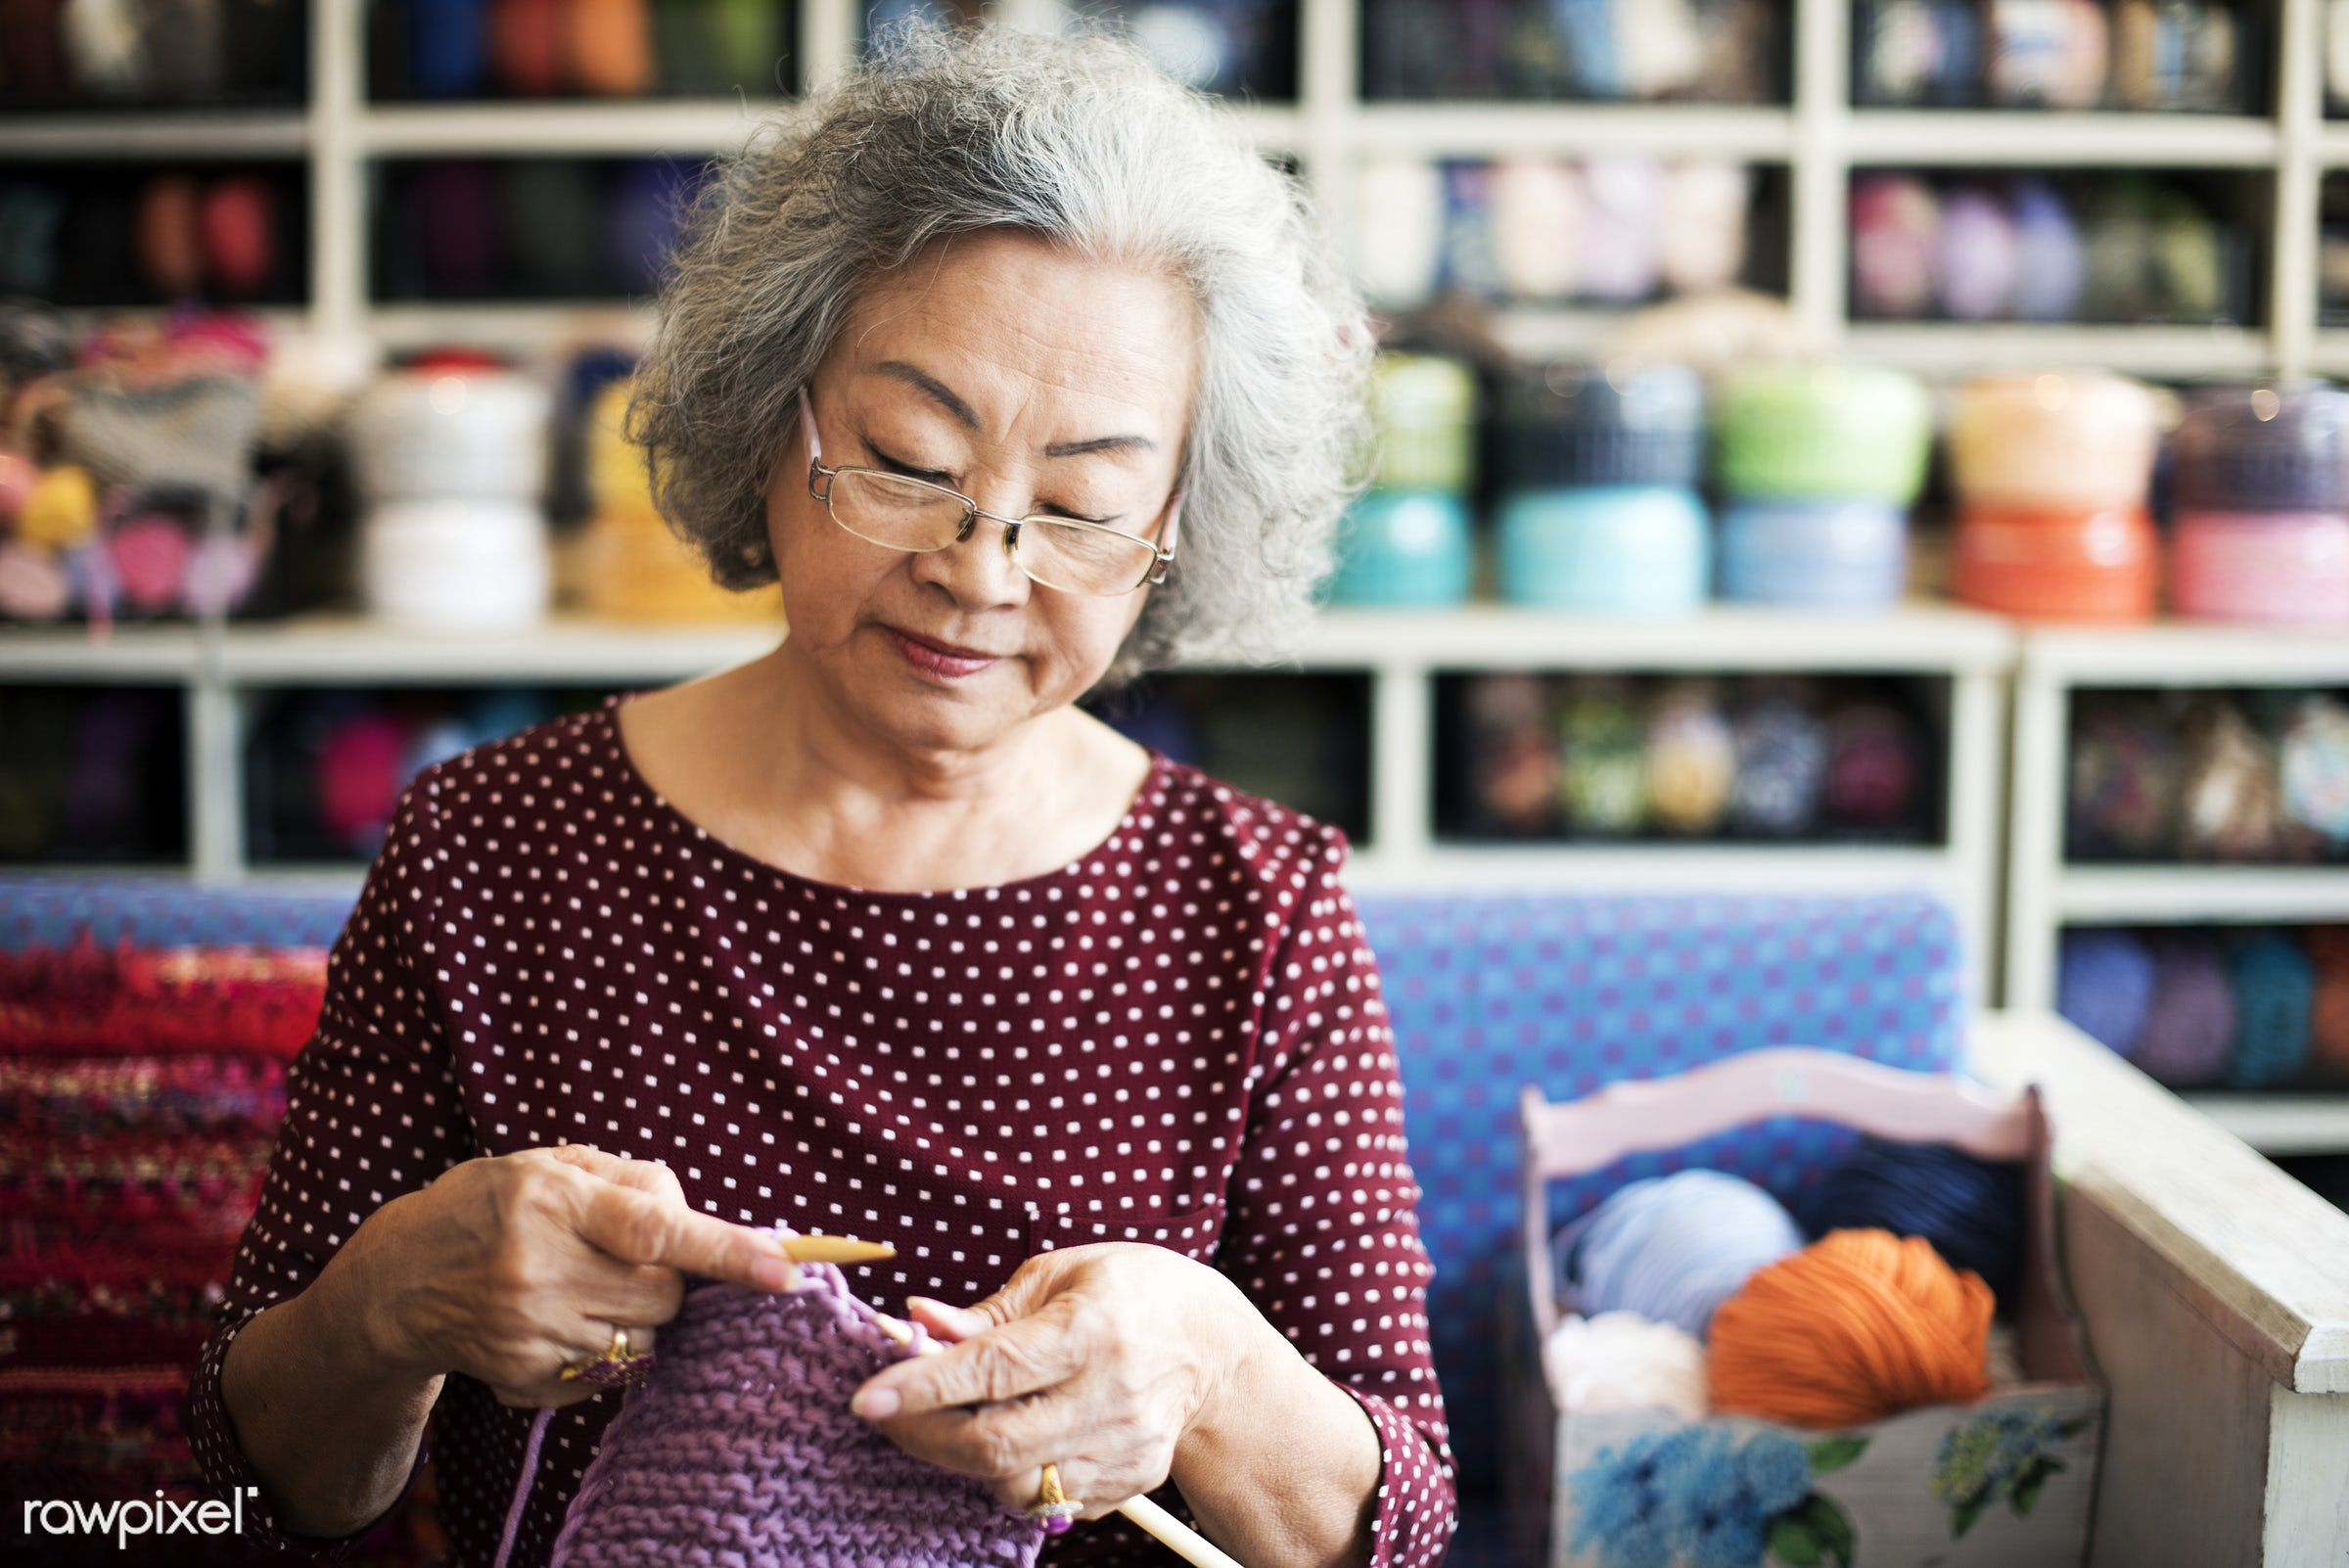 Lifestyle of a senior Asian woman - portrait, cafe, activity, adult, asian, casual, cheerful, close up, craft, day, female,...